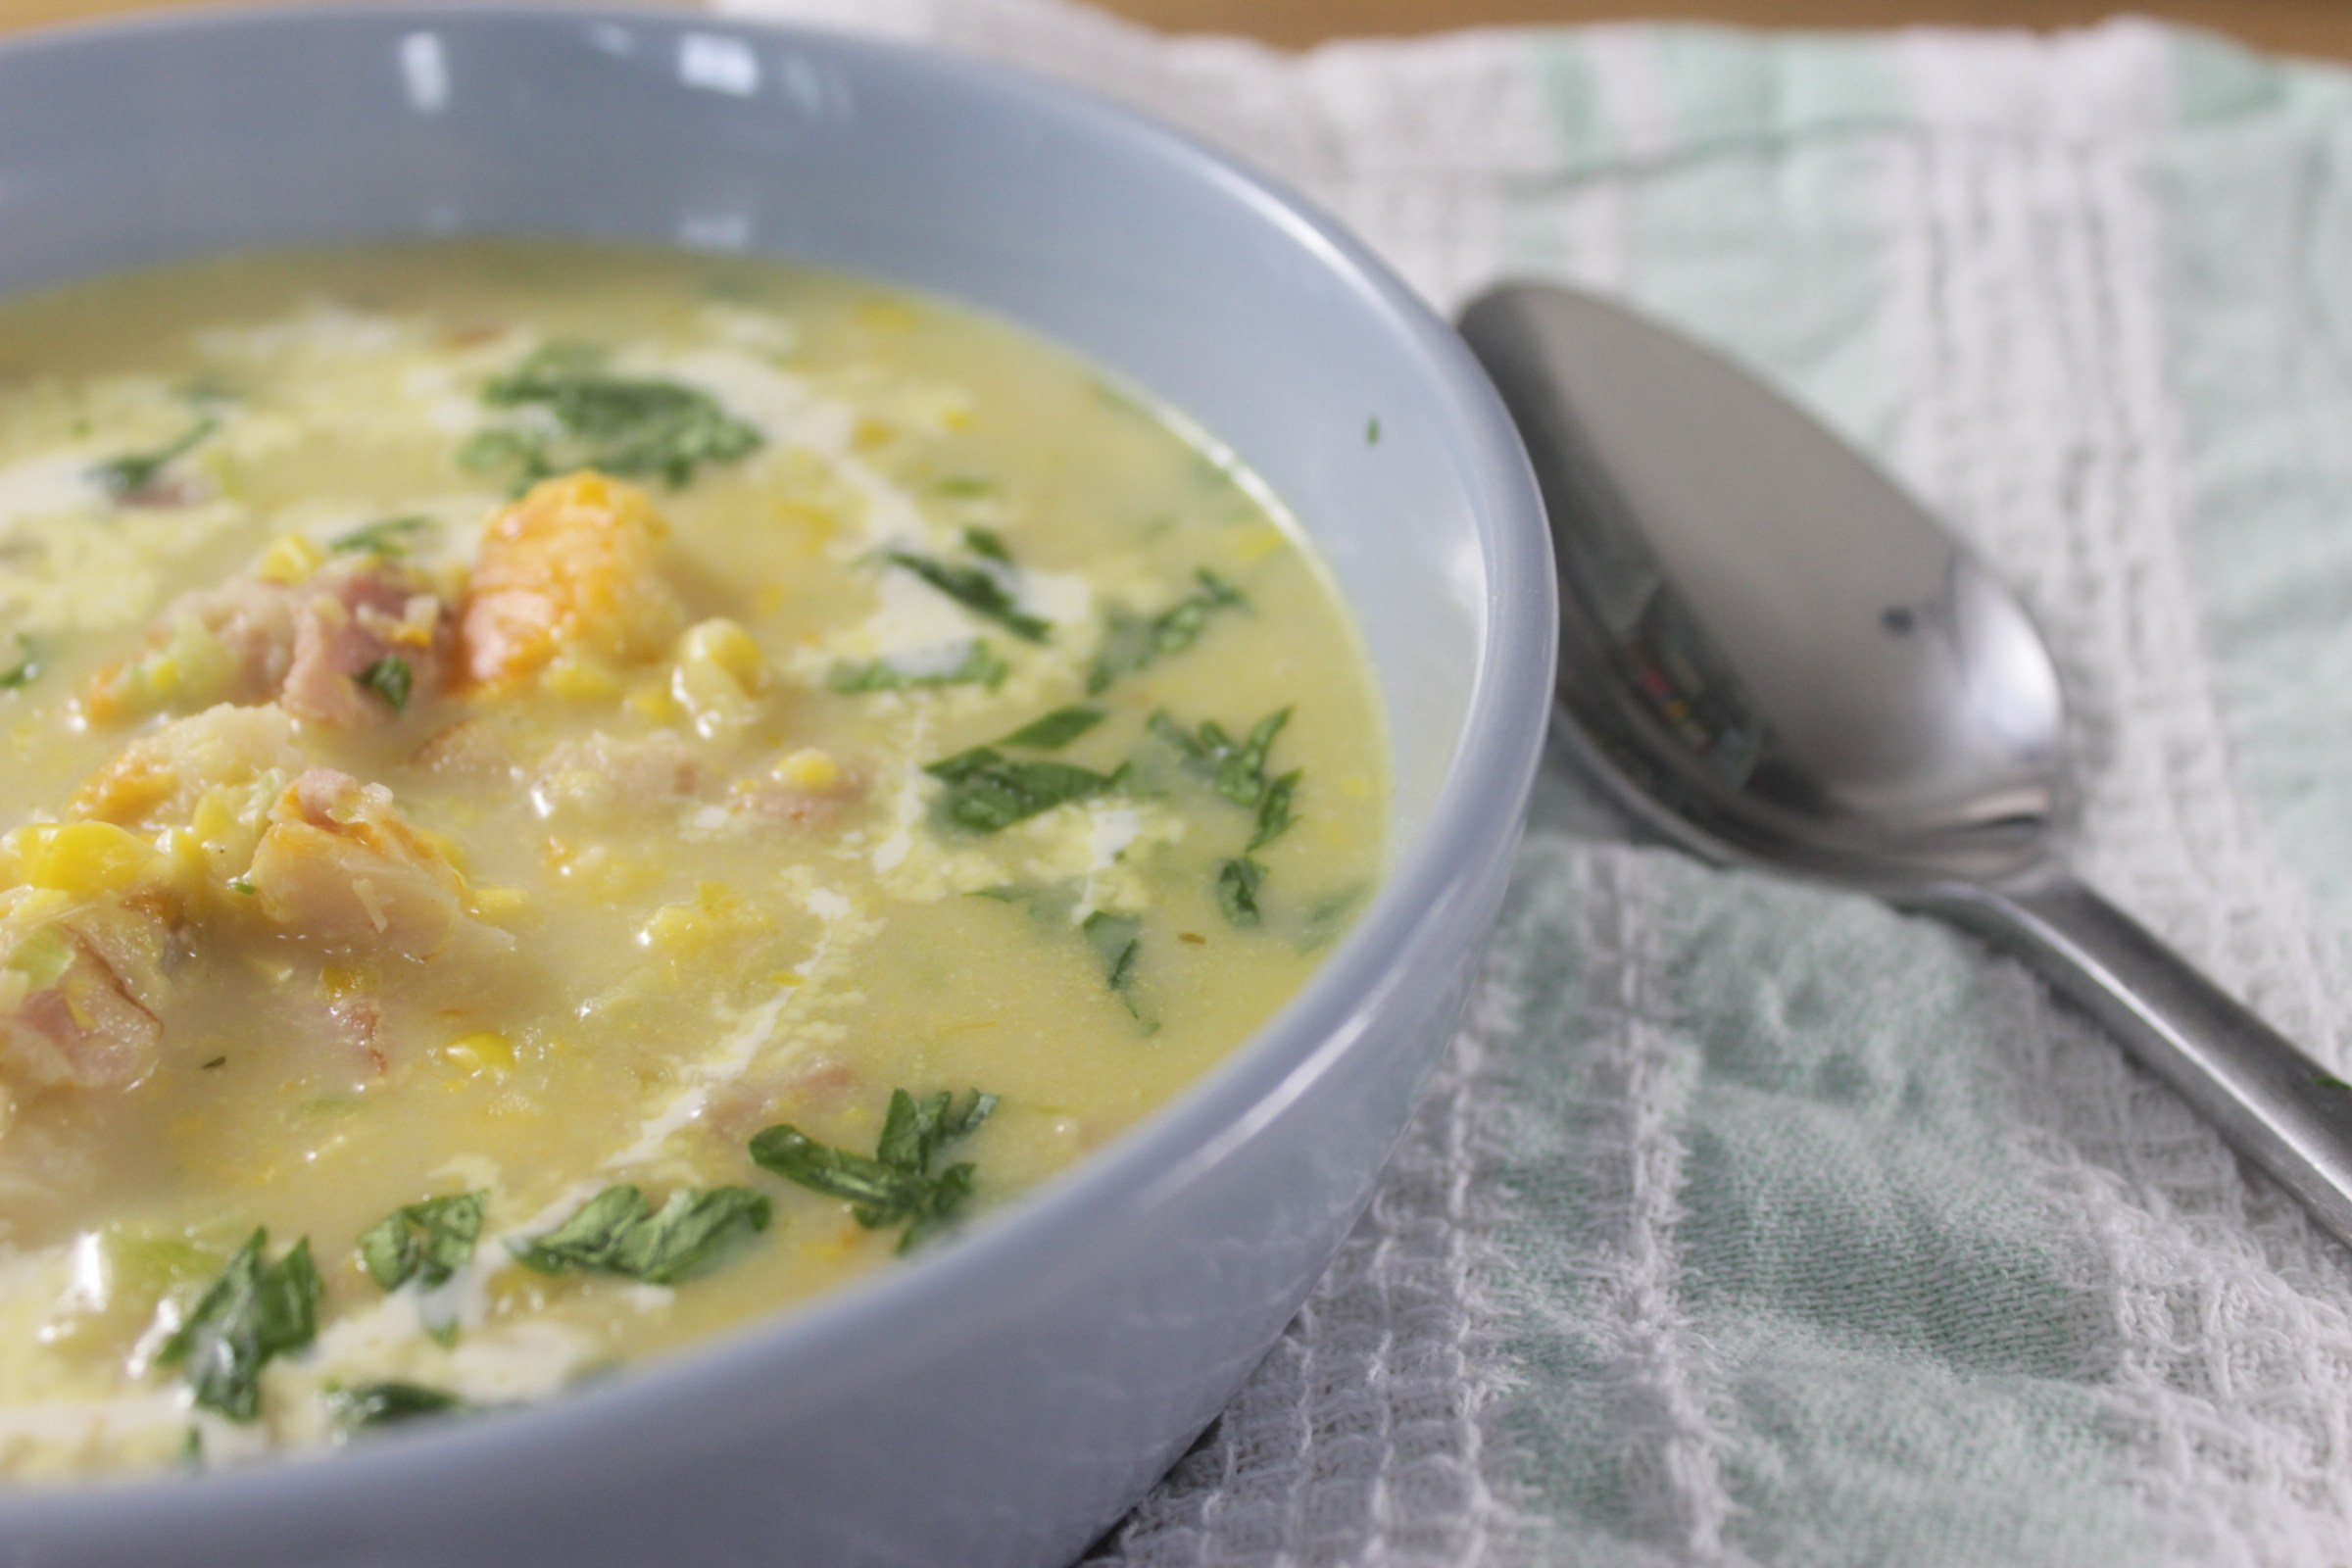 Smoked haddock and bacon chowder